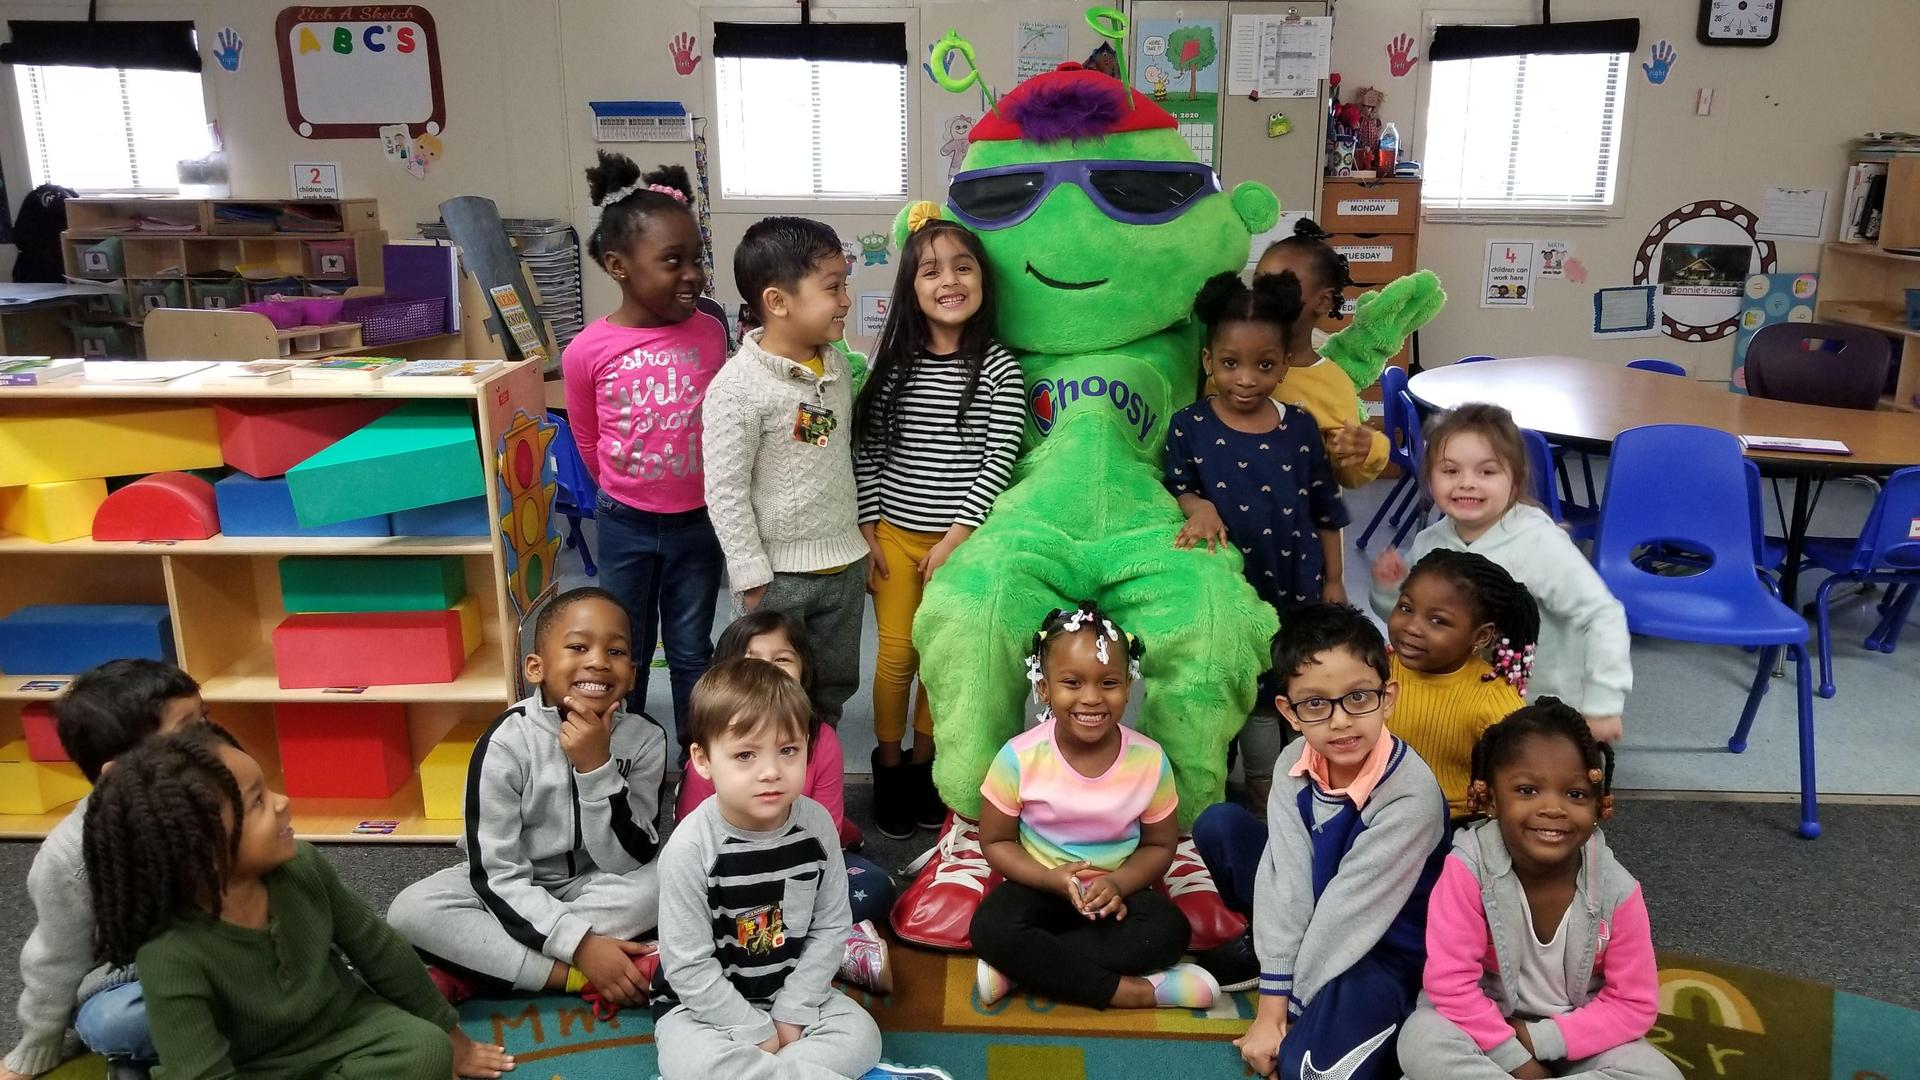 Students celebrating a visit from healthy habit mascot Choosy.